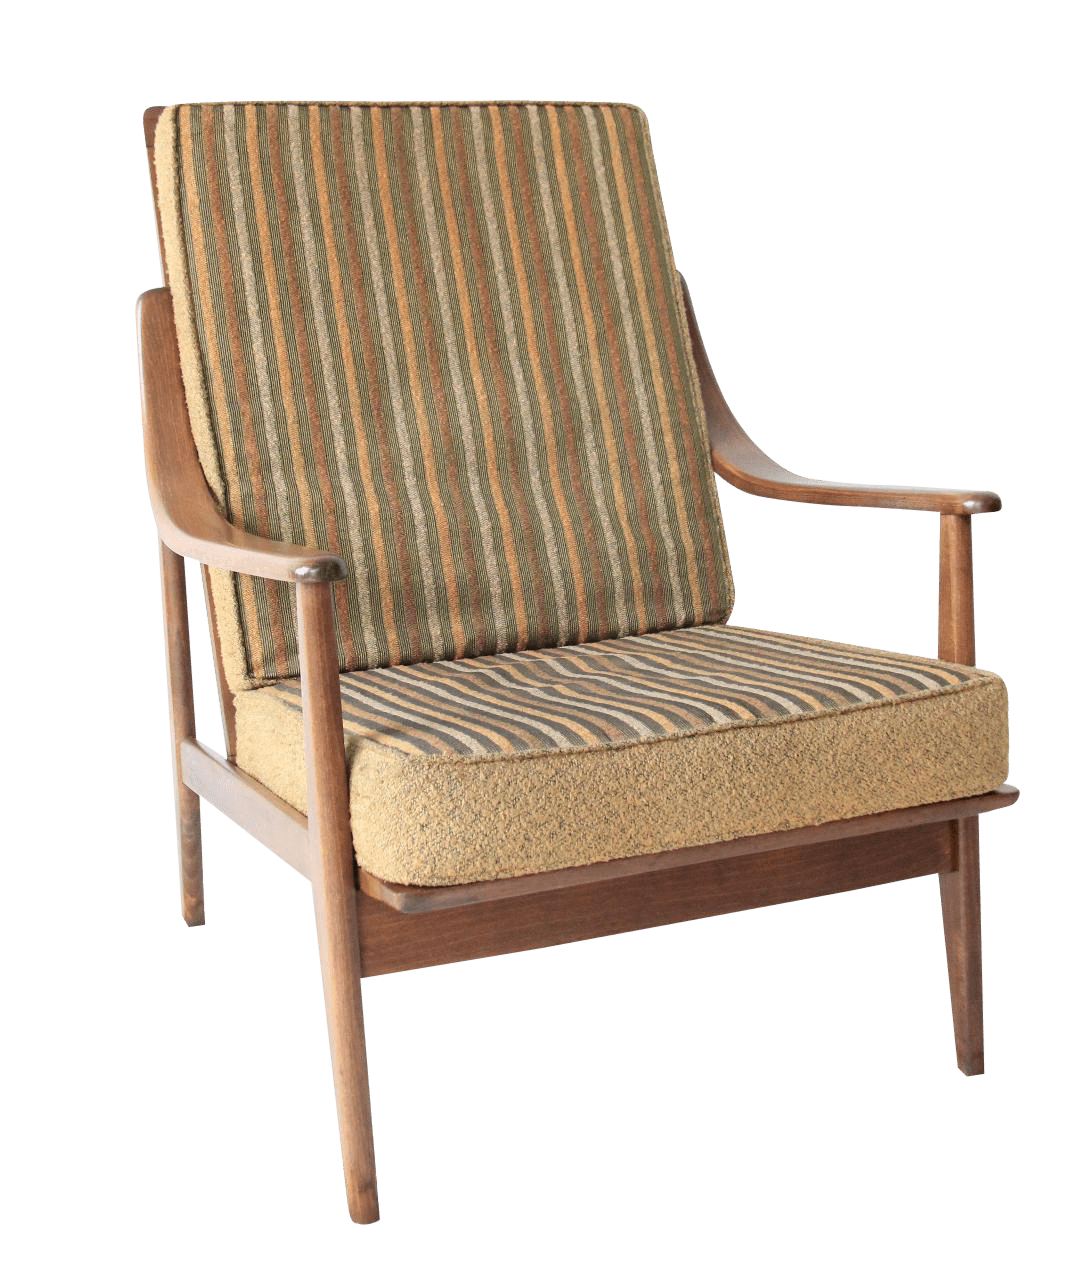 High Back Lounge Chair Vintage Mid Century Striped High Back Lounge Chair Chairish